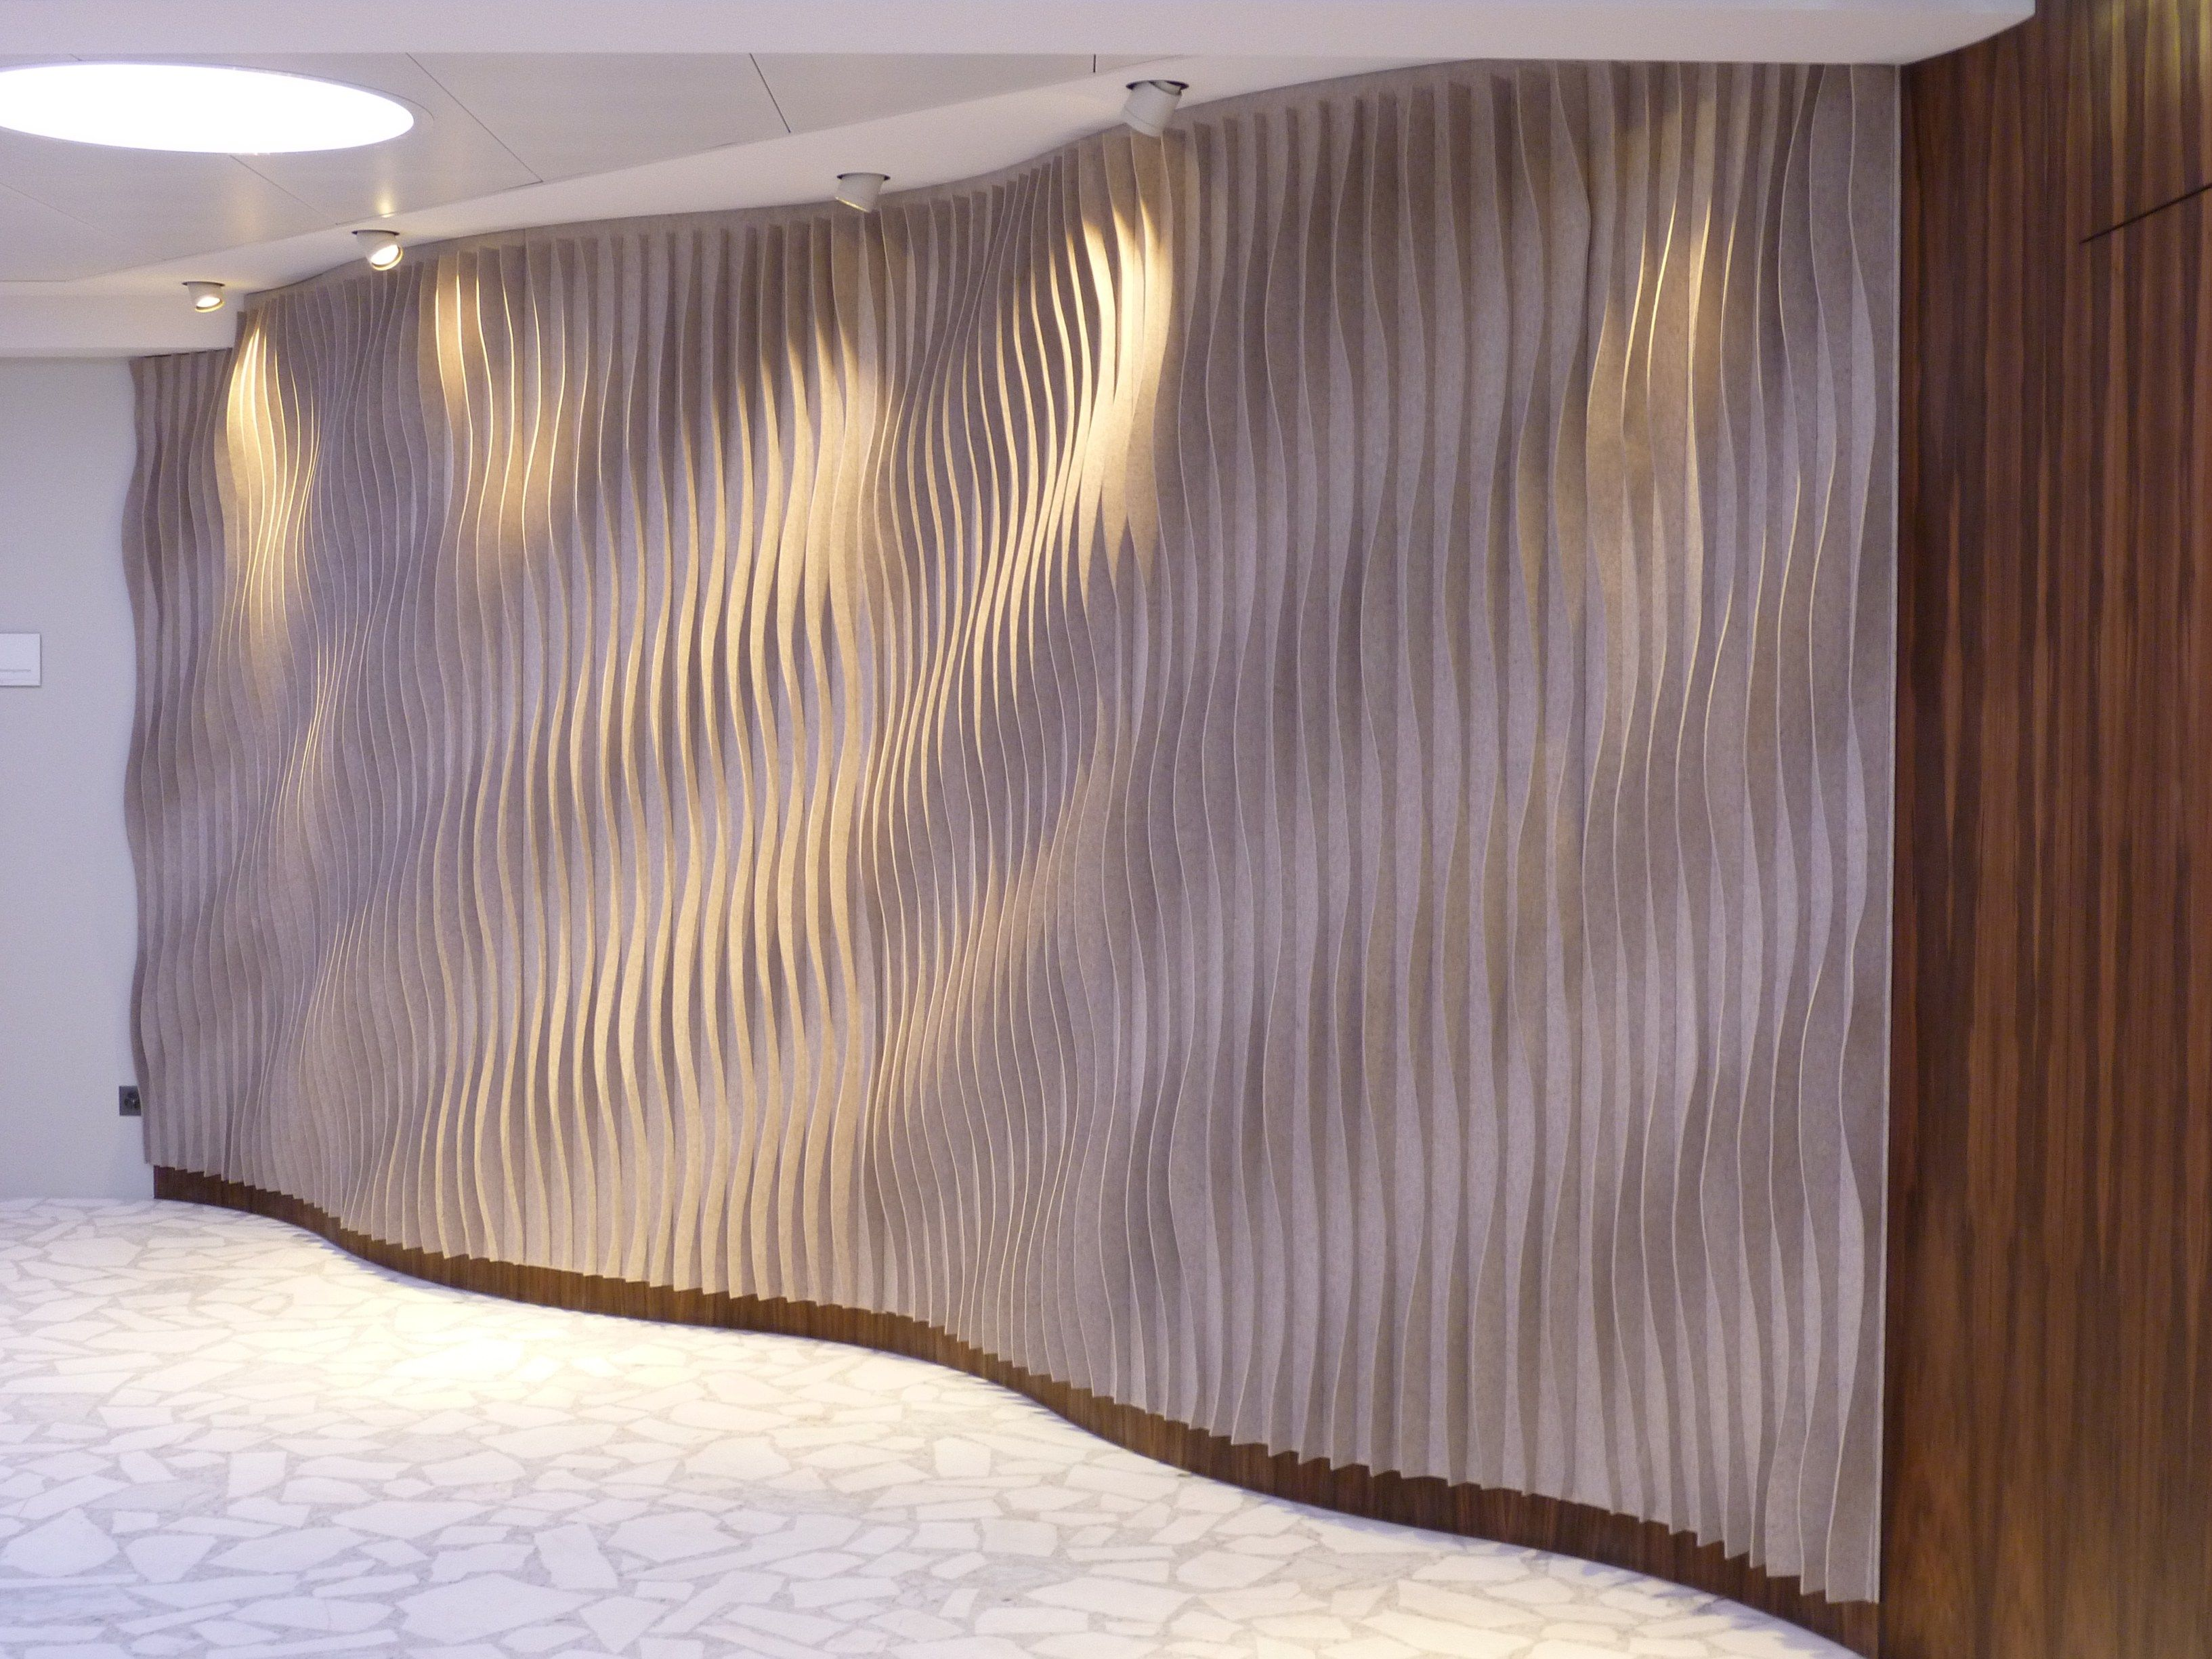 Laine curved decorative acoustic panel yoga reception pinterest acoustic panels and curves - Decorative acoustic wall panels ...